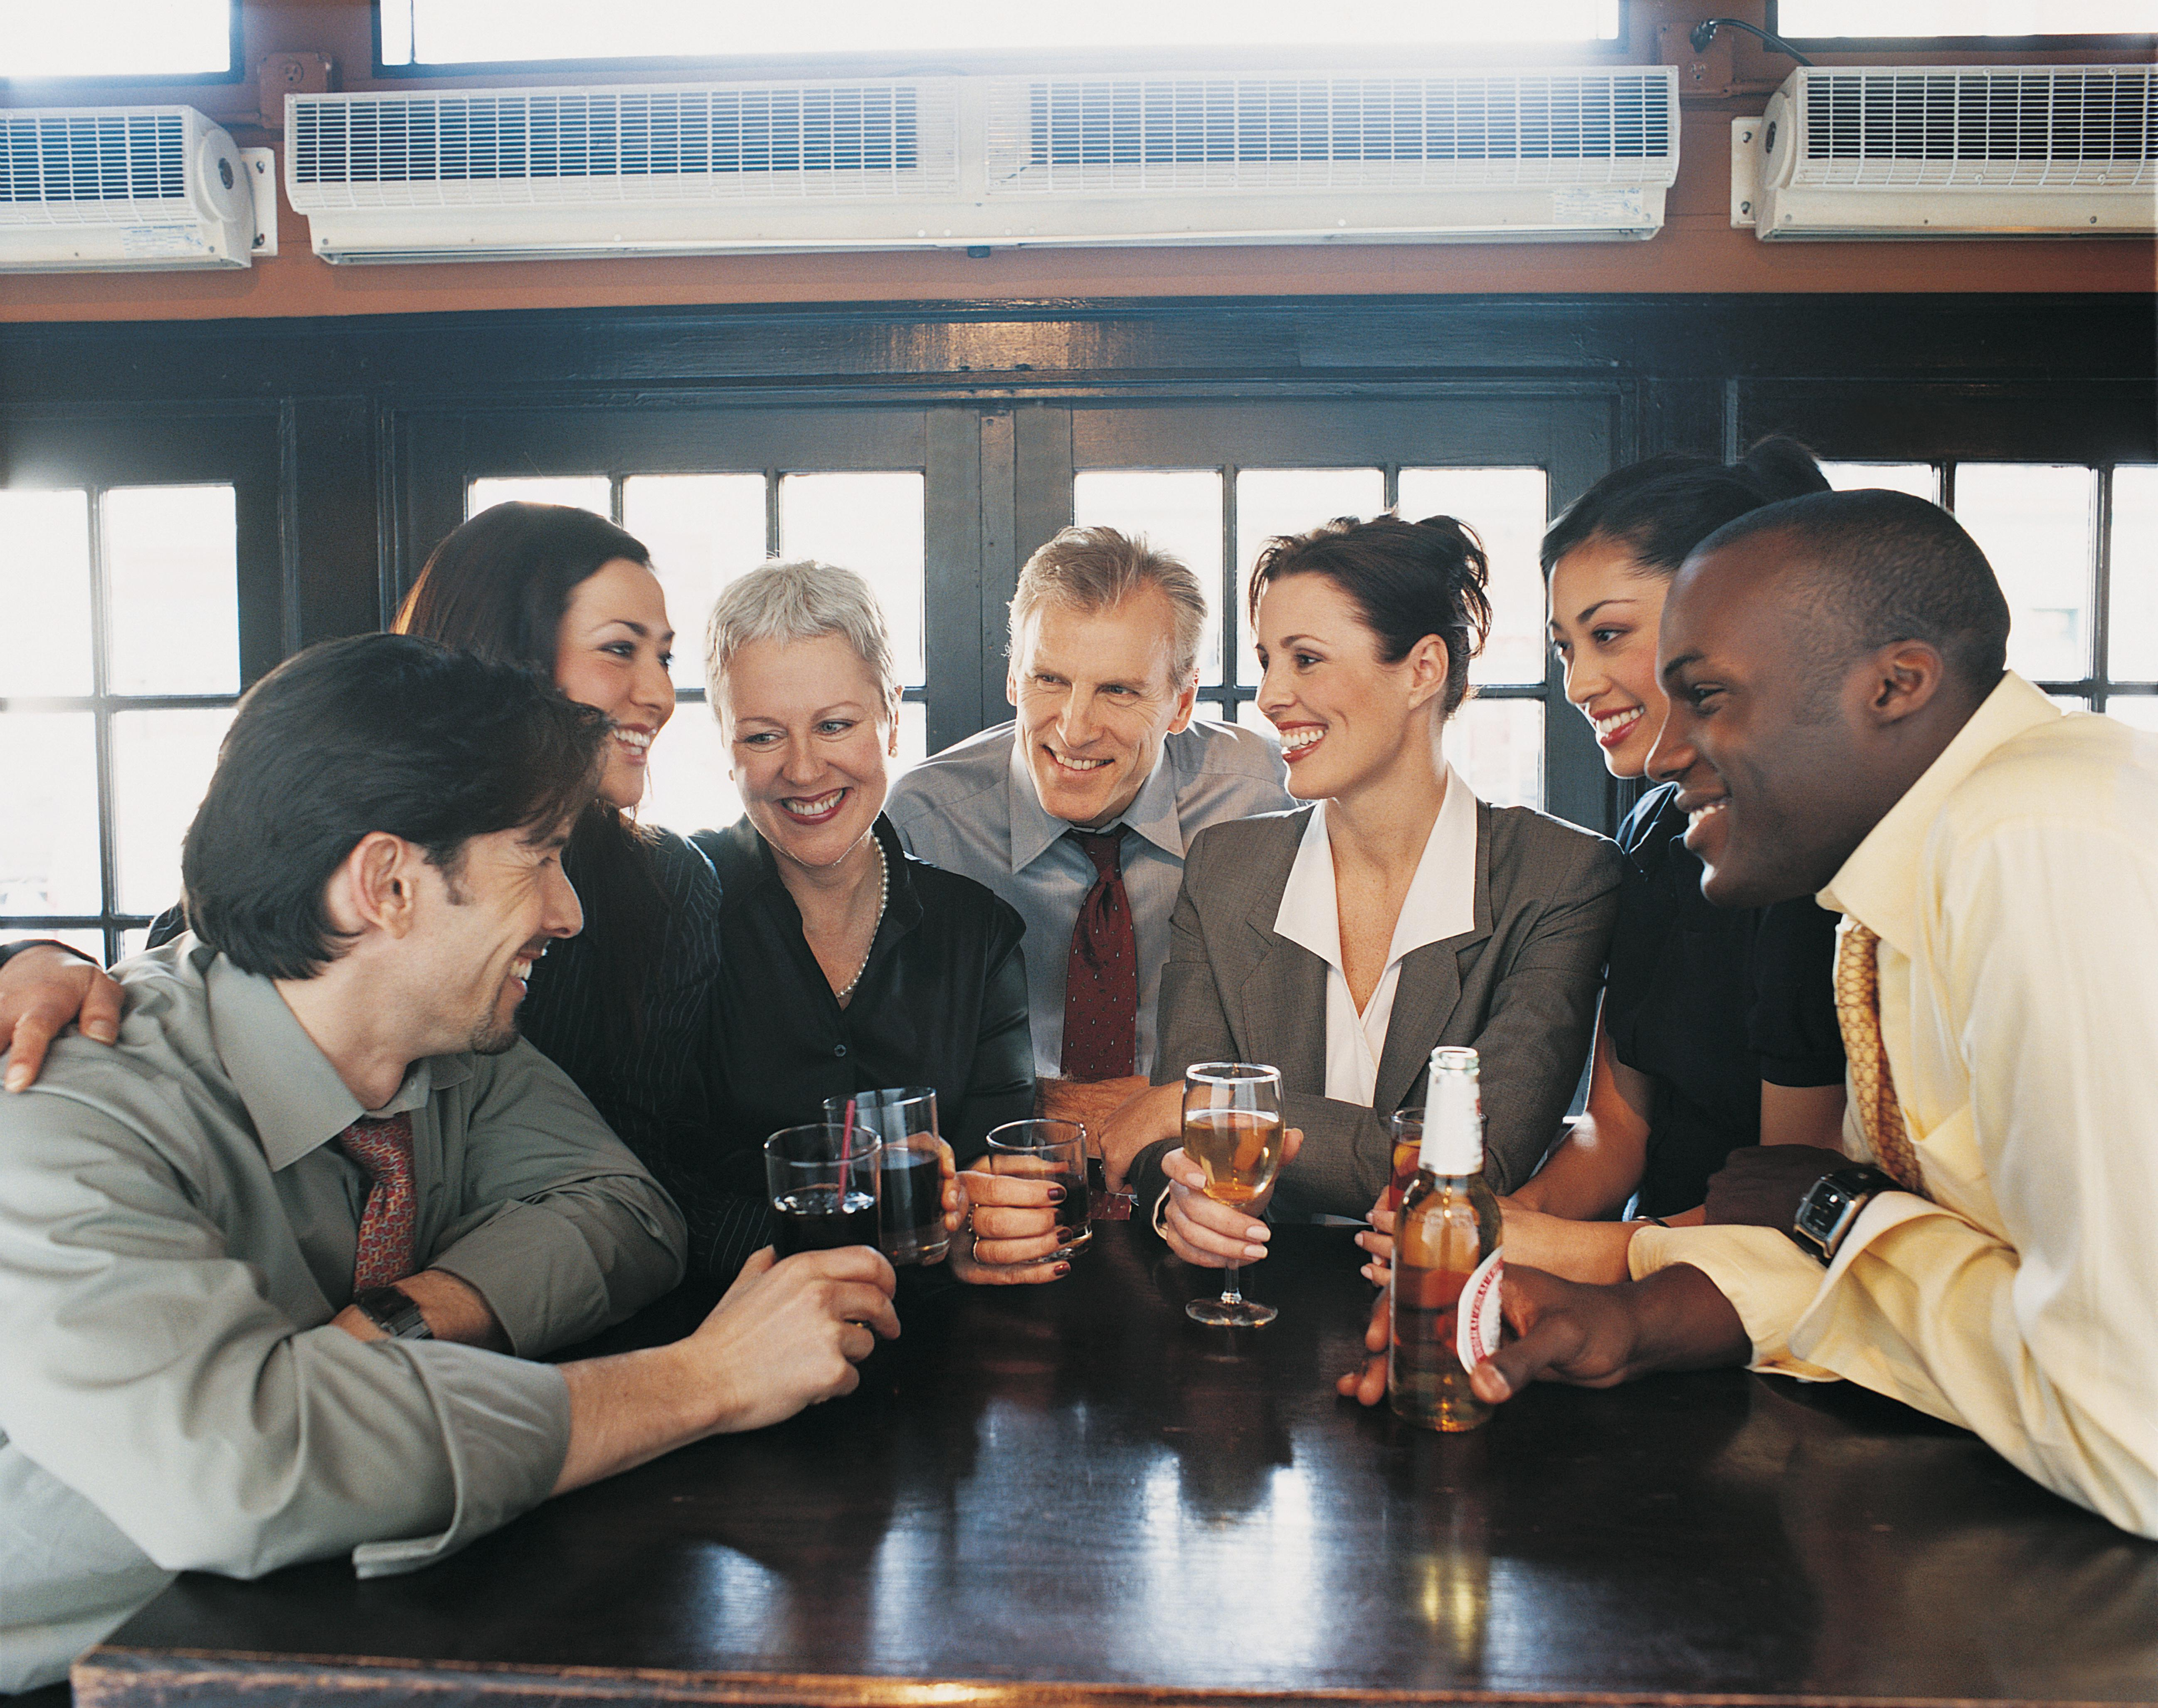 Businessmen and Businesswomen Work Colleagues Enjoying a Drink in a Bar